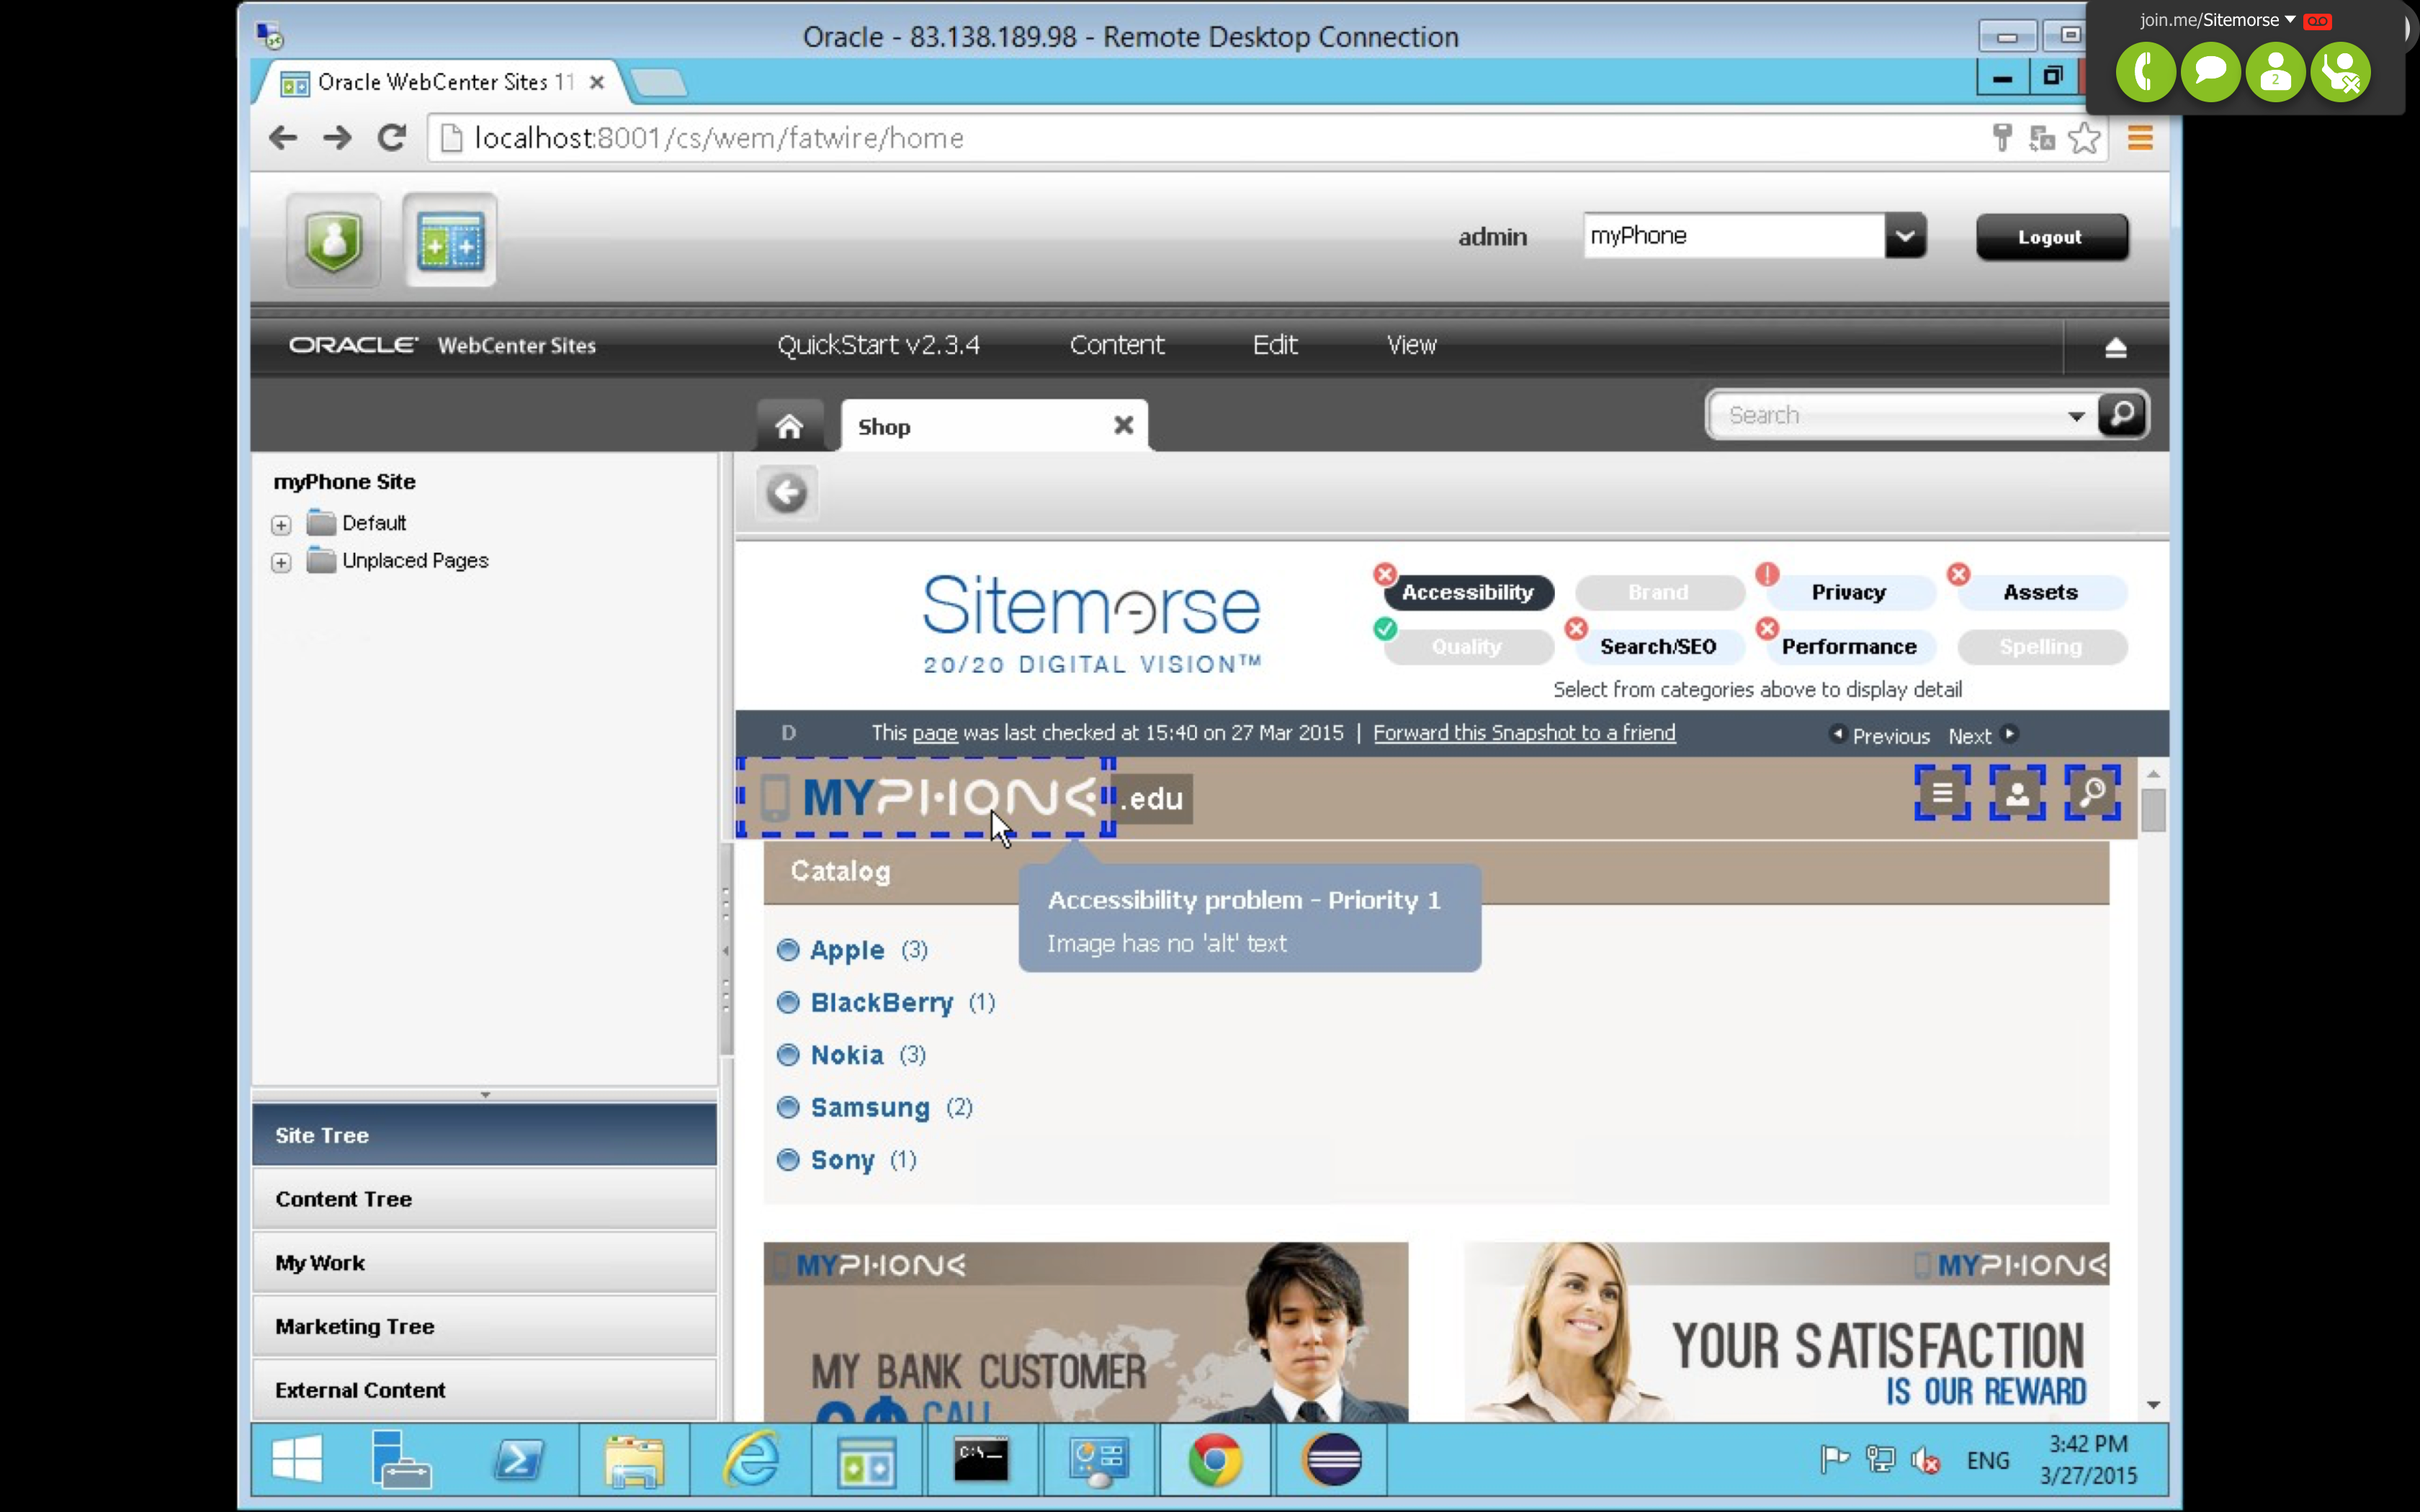 Sitemorse screenshot